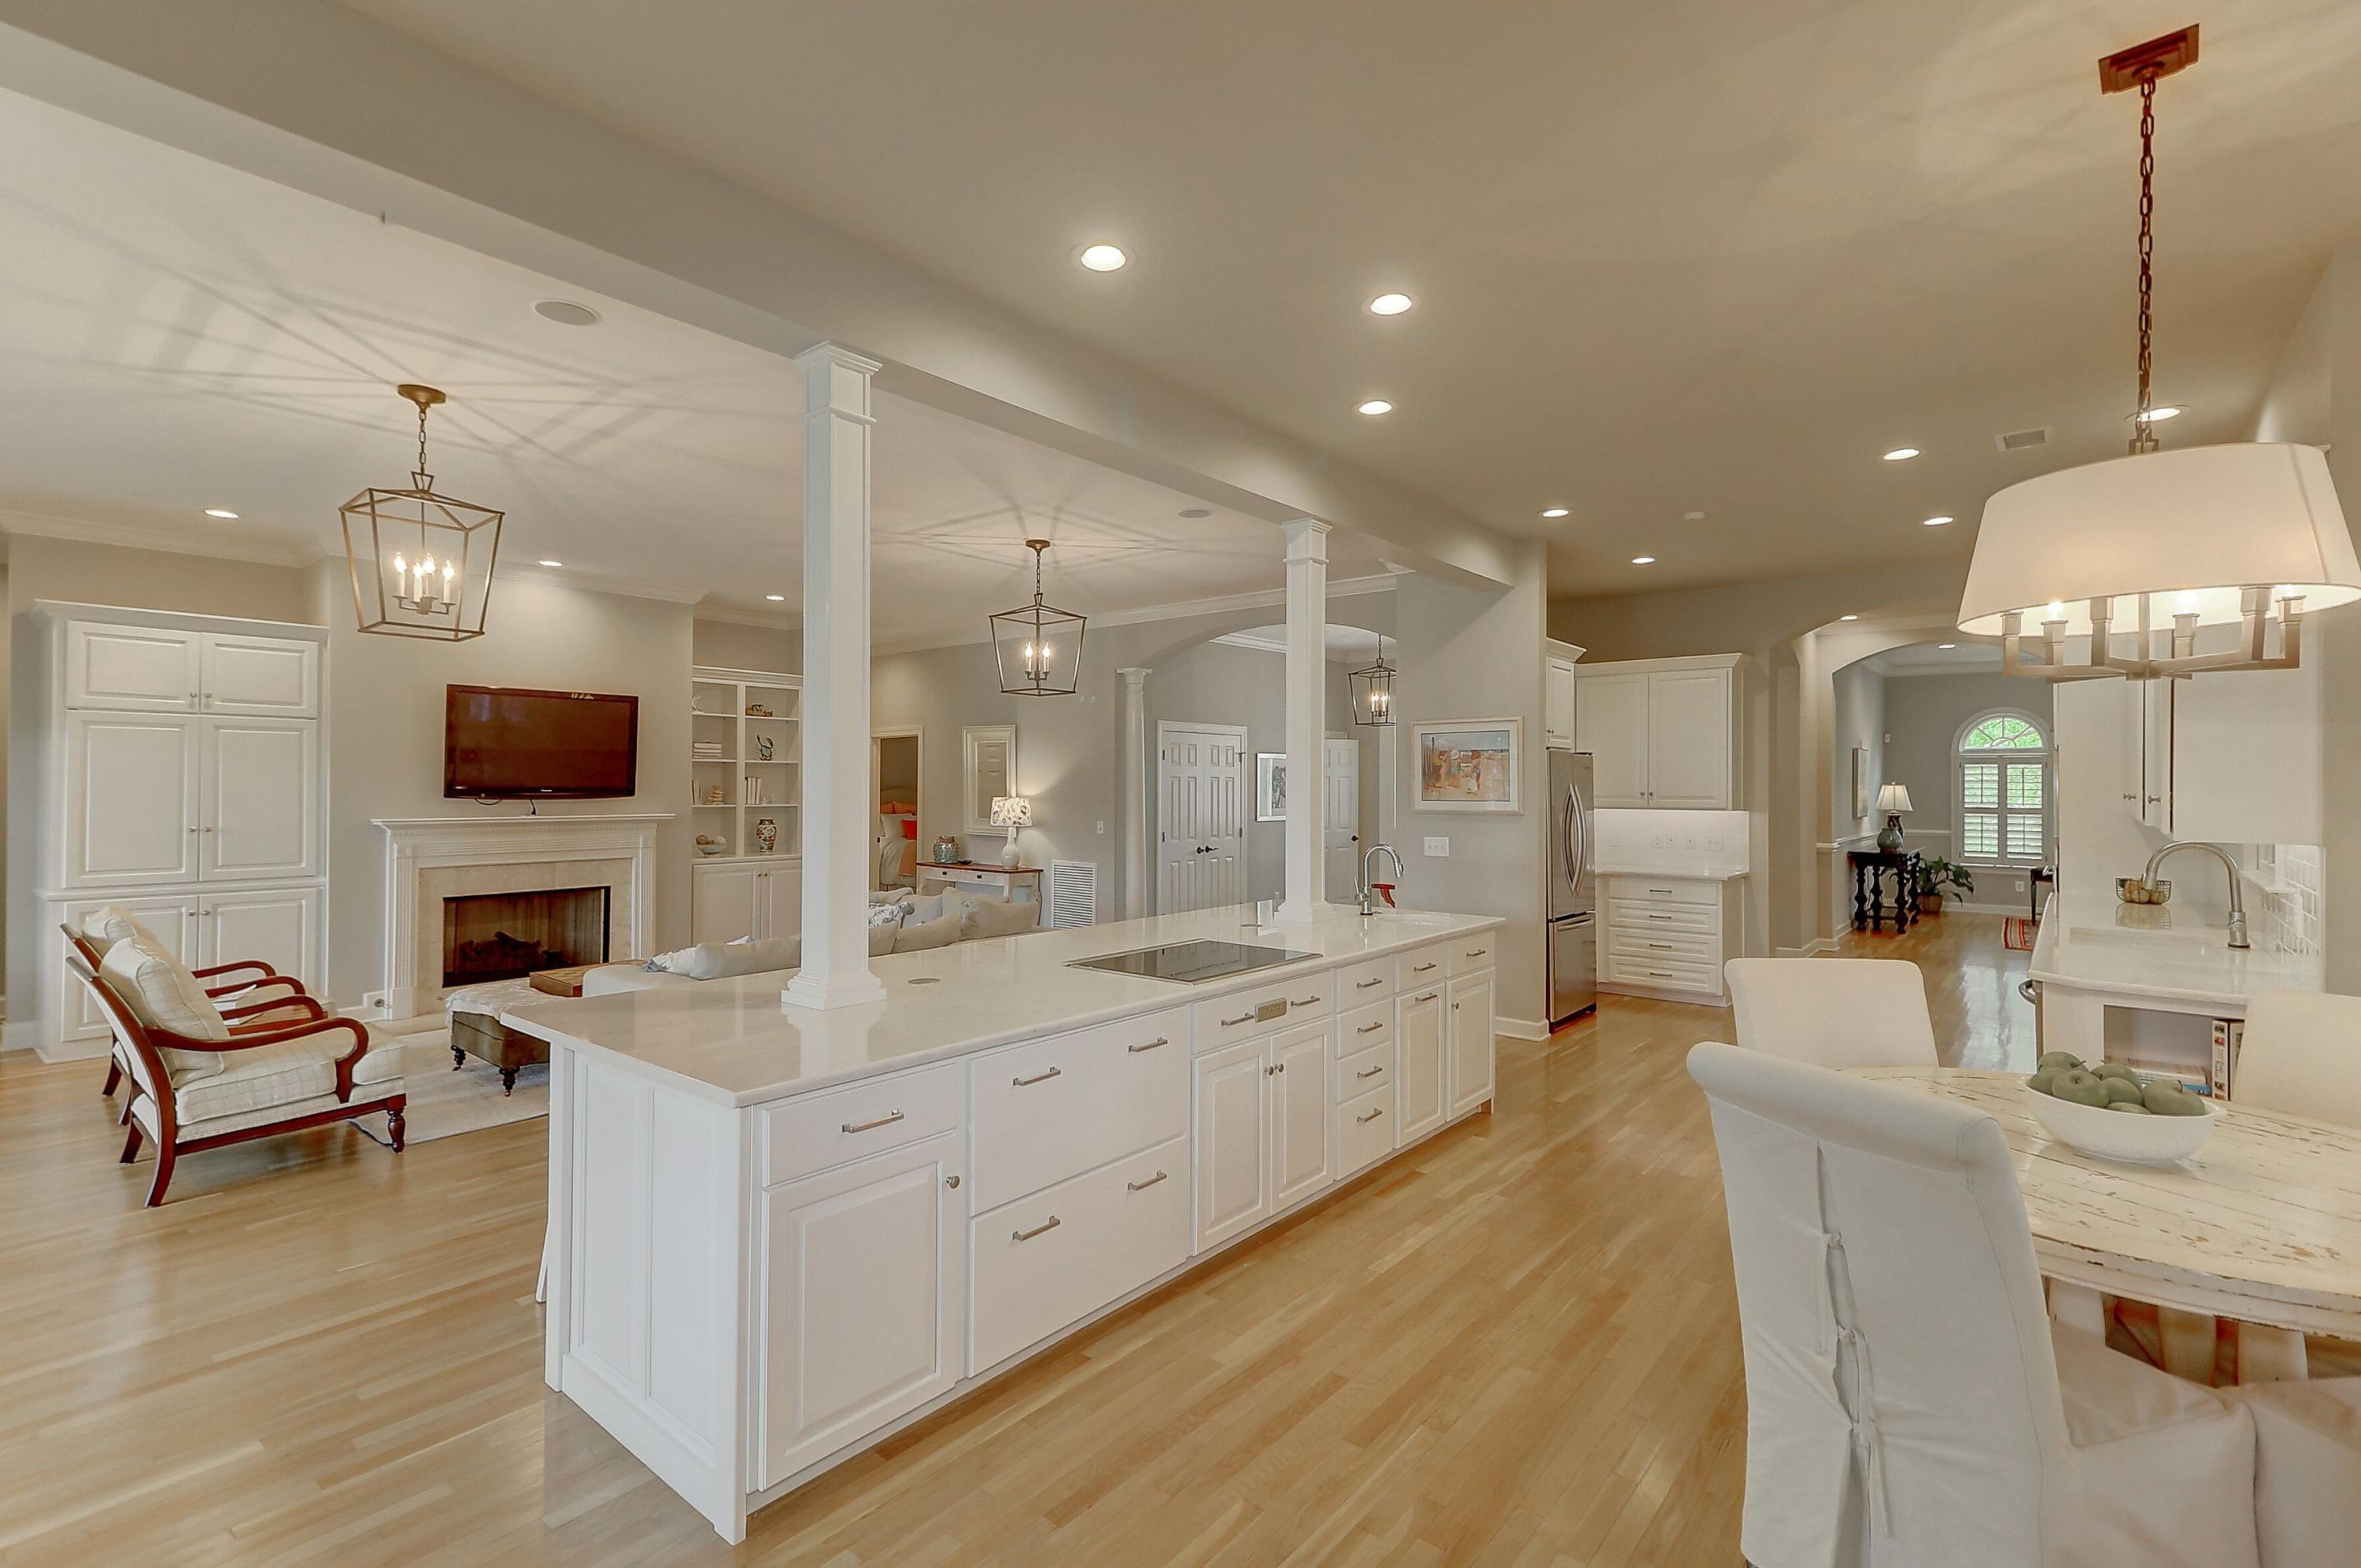 Wild Dunes Homes For Sale - 60 Seagrass, Isle of Palms, SC - 19